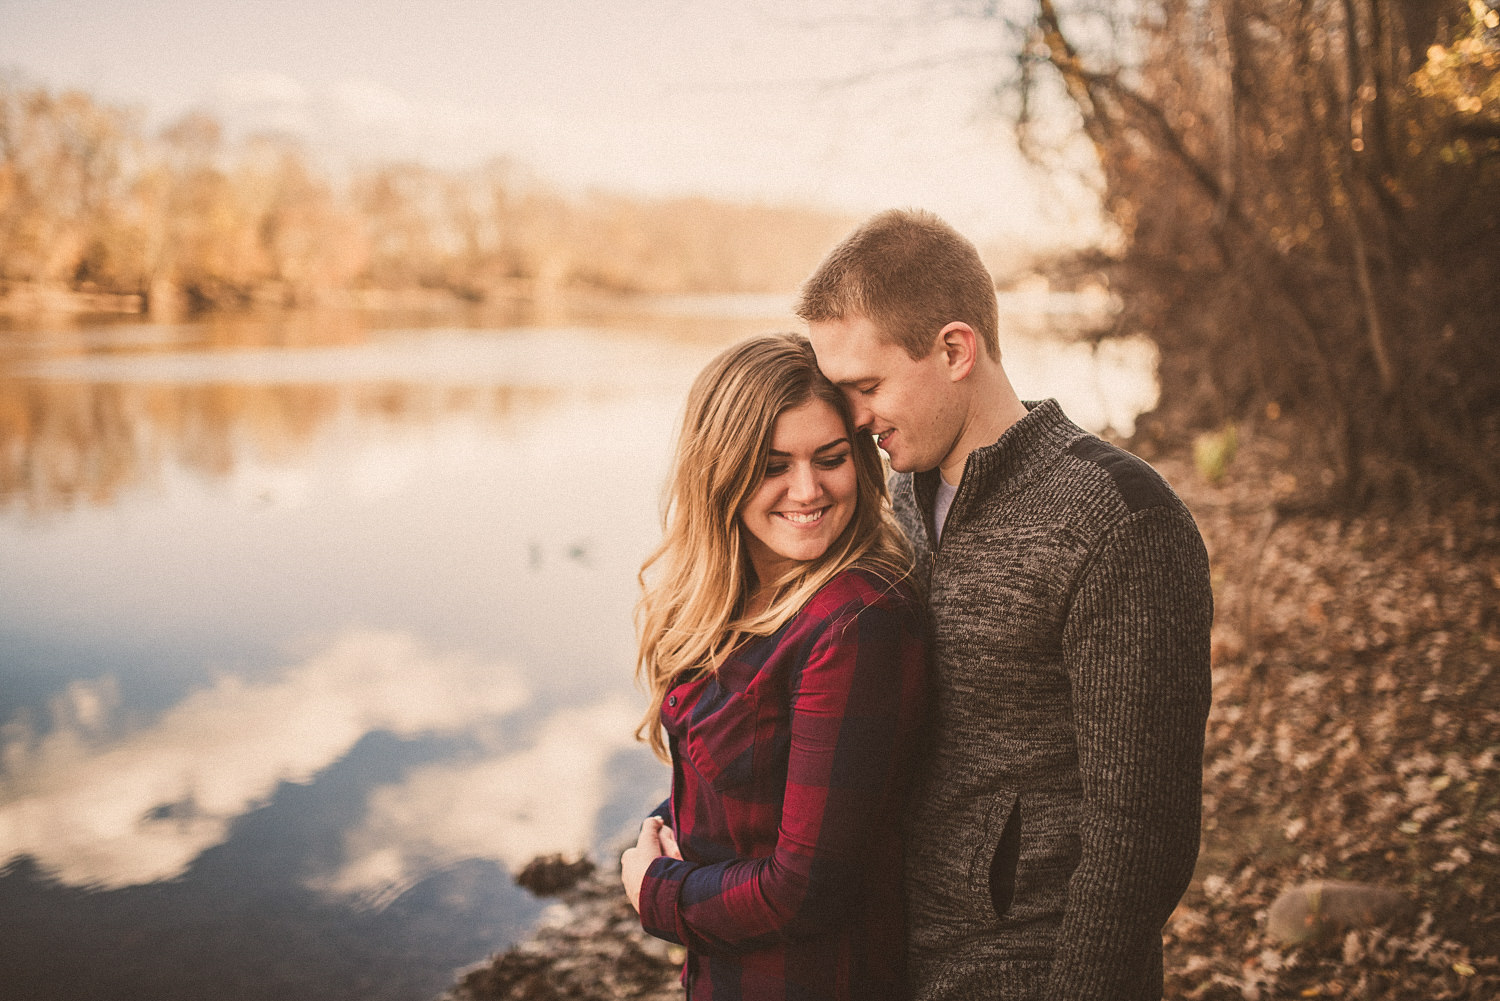 Johnson Park Downtown Grand Rapids Engagement  - 44.jpg